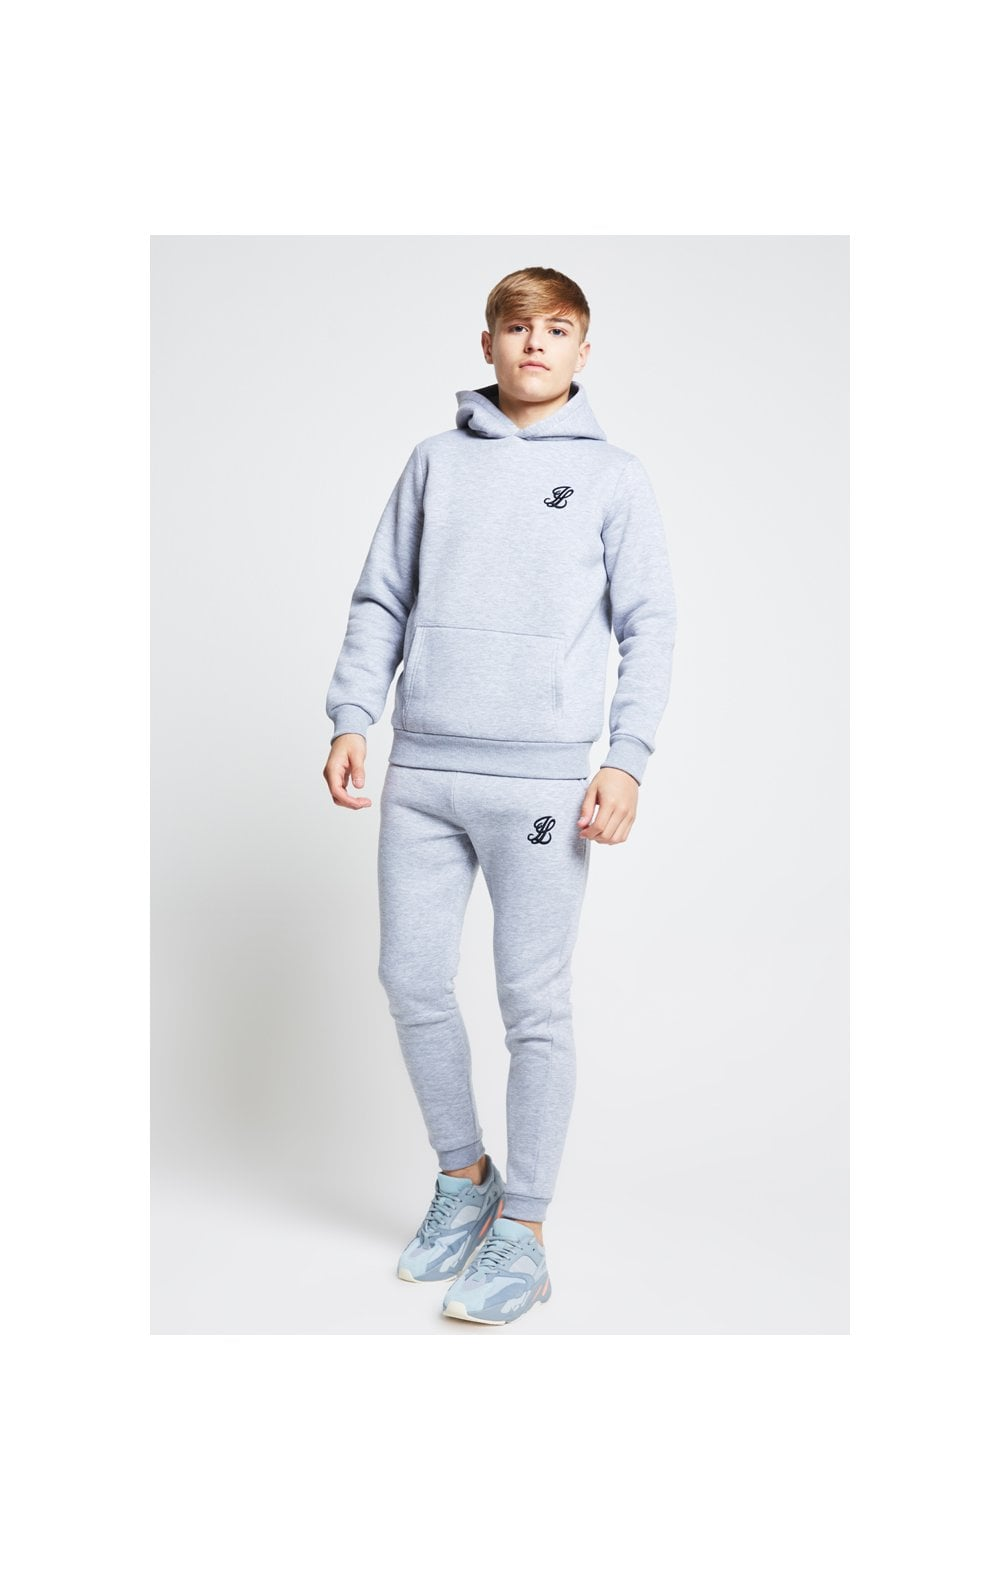 Illusive London Joggers – Grey Marl (4)